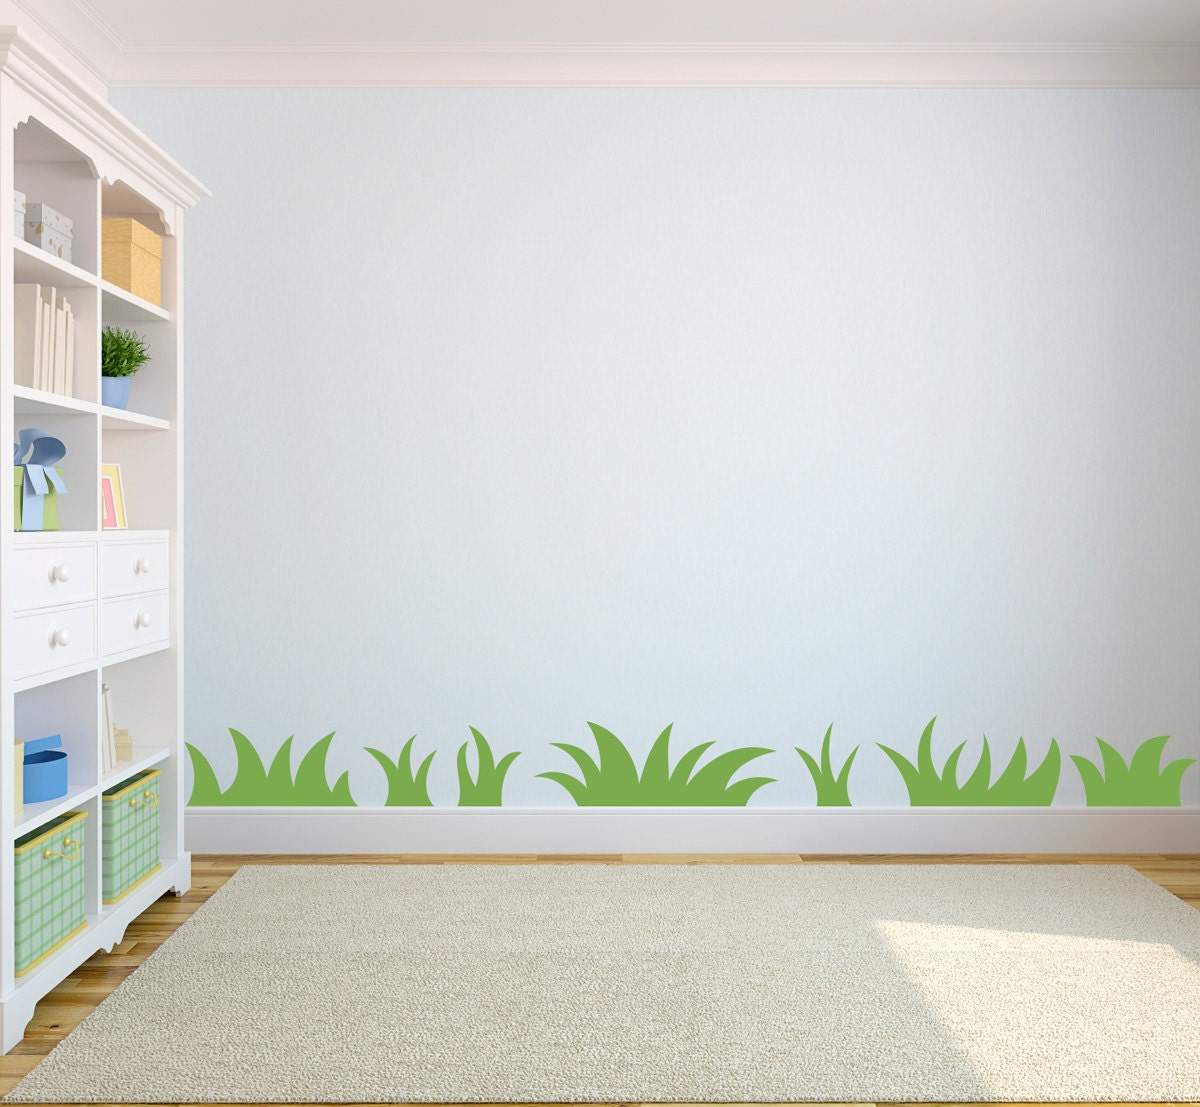 Wall Decor Childrens Rooms : Grass wall decal nature art for kids by